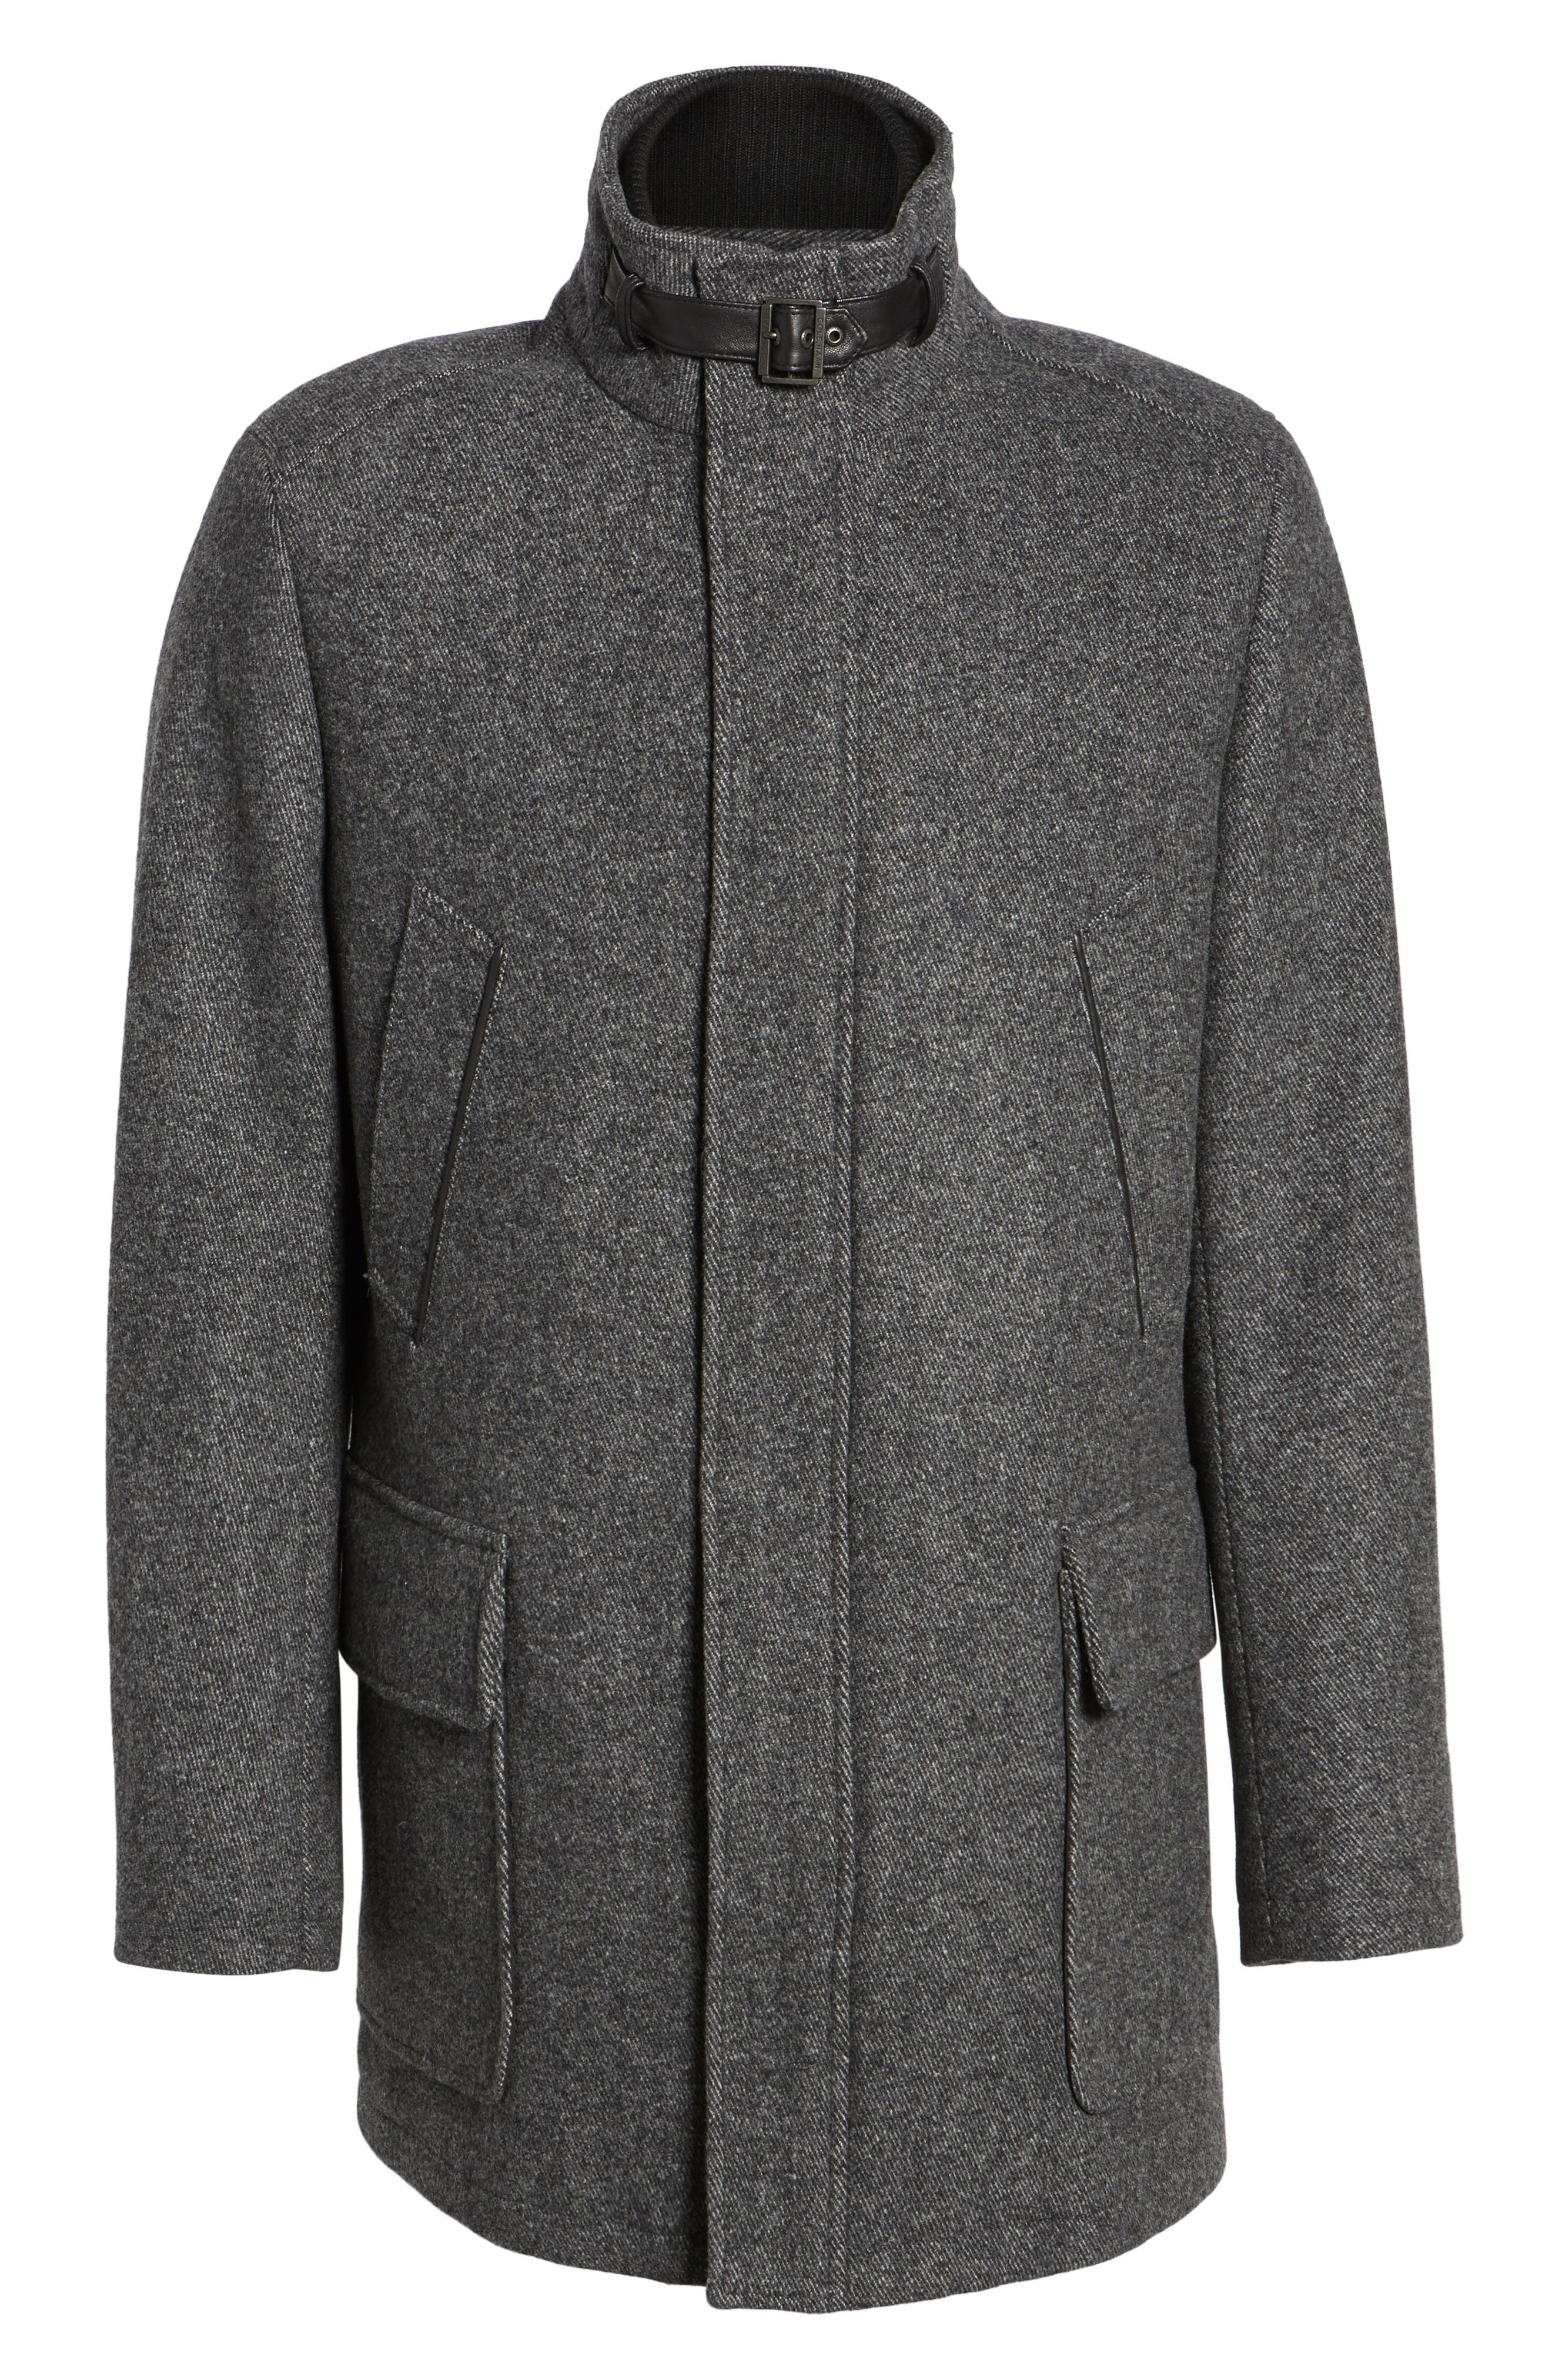 Wool Blend Car Coat with Removable Knit Bib,                             Alternate thumbnail 5, color,                             073